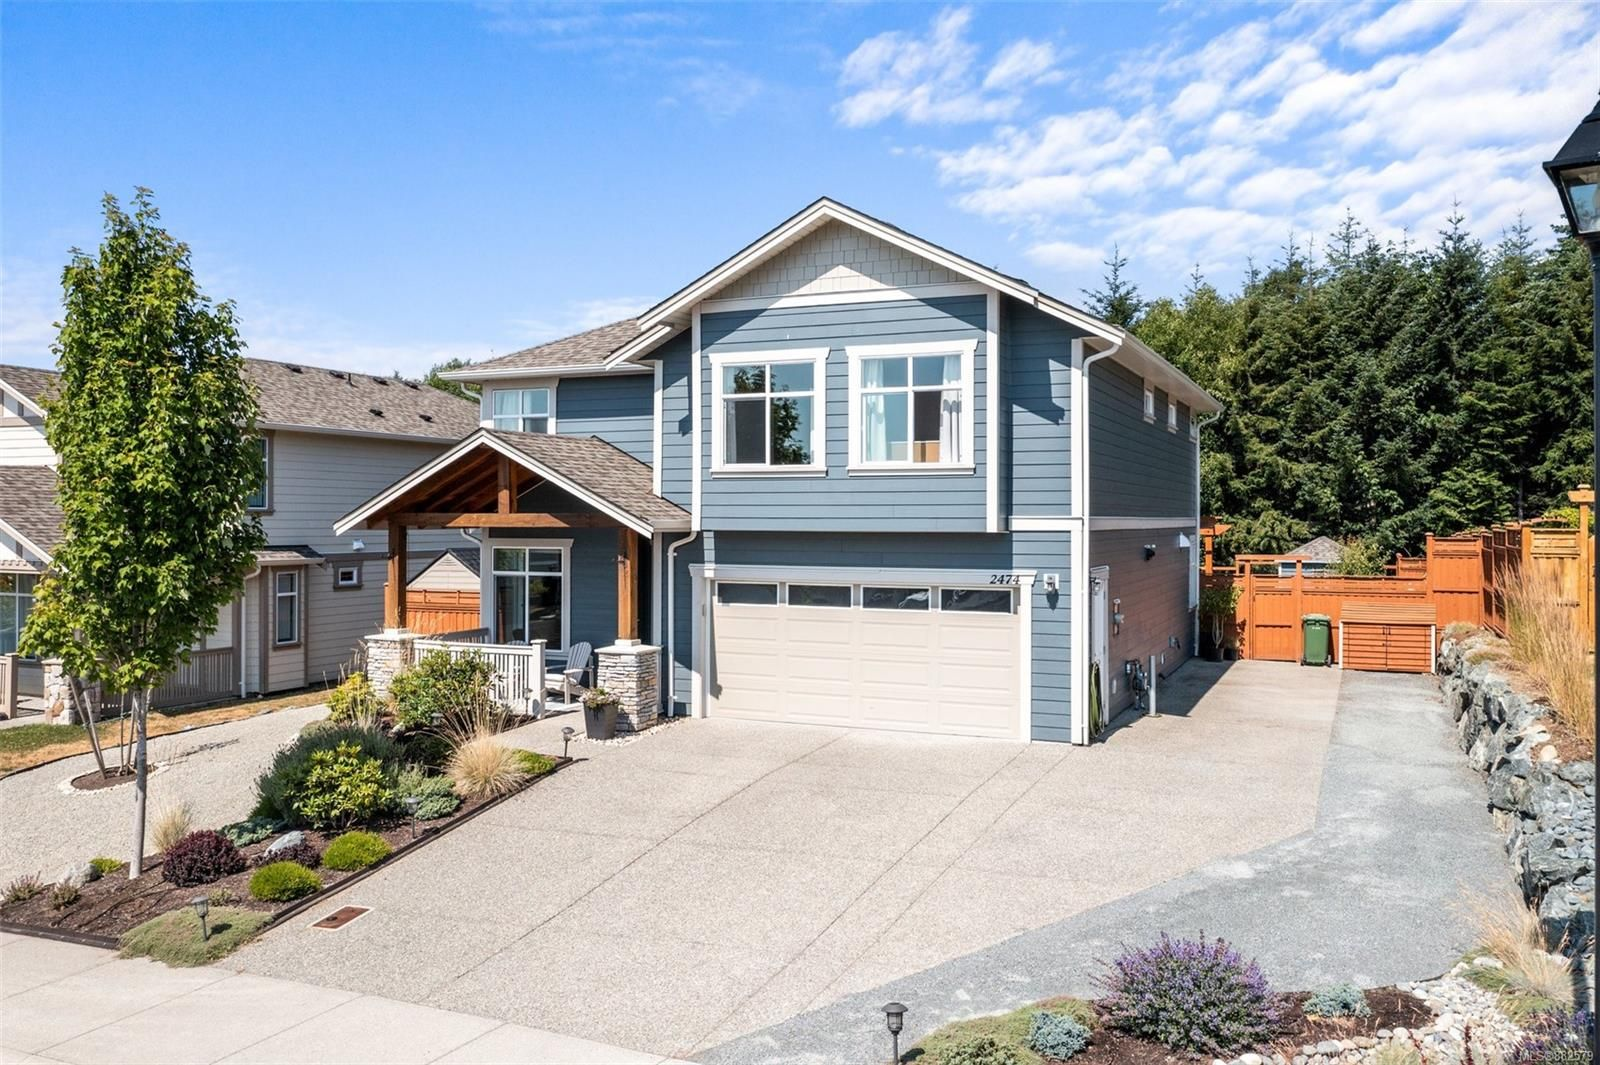 Main Photo: 2474 Anthony Pl in Sooke: Sk Sunriver House for sale : MLS®# 882579